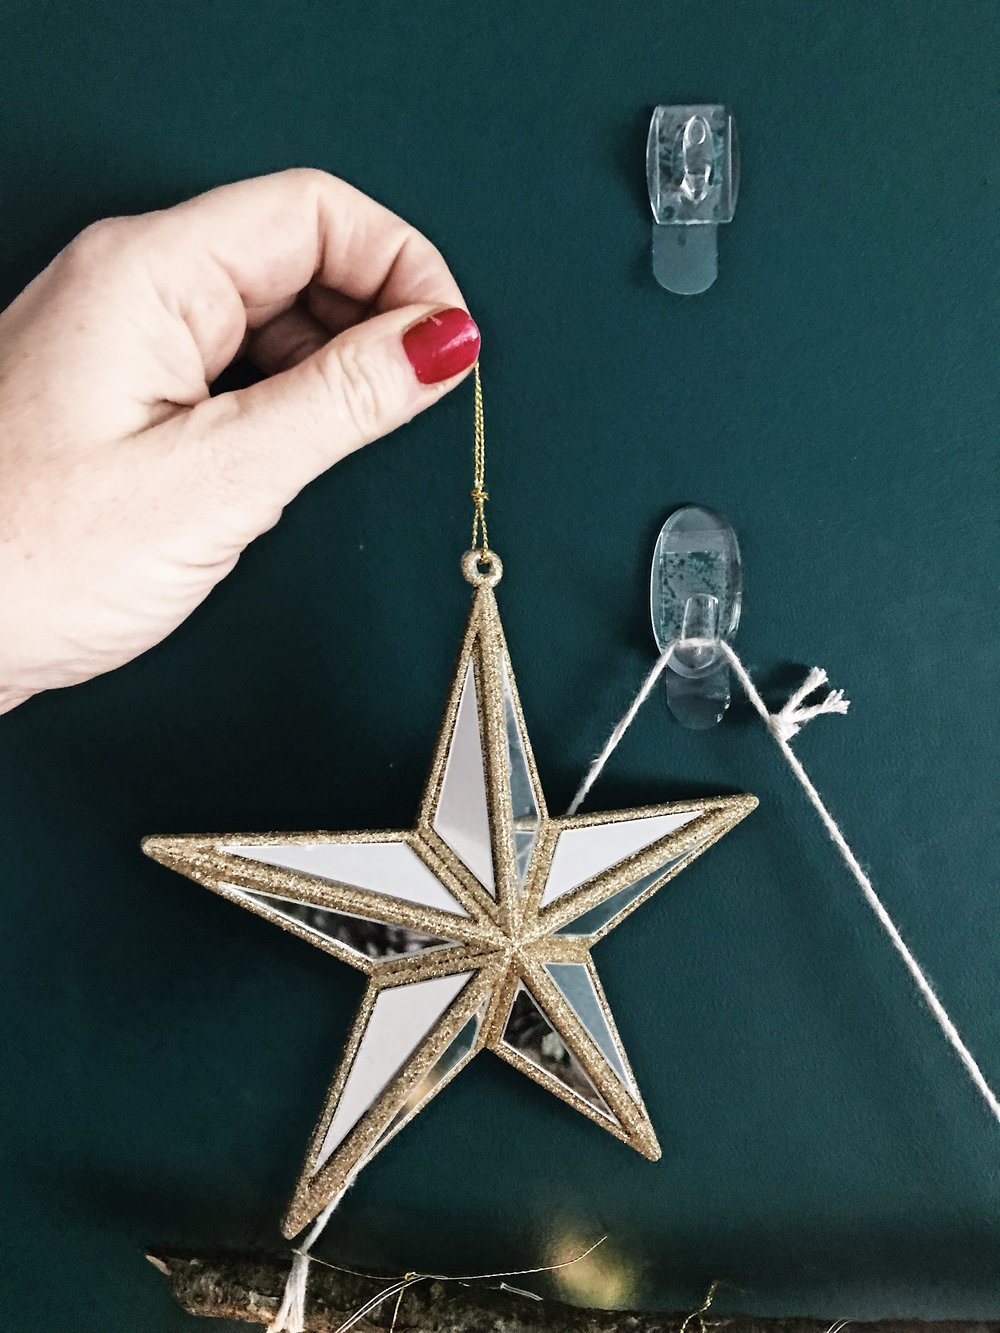 Hanging the Star to cover the string